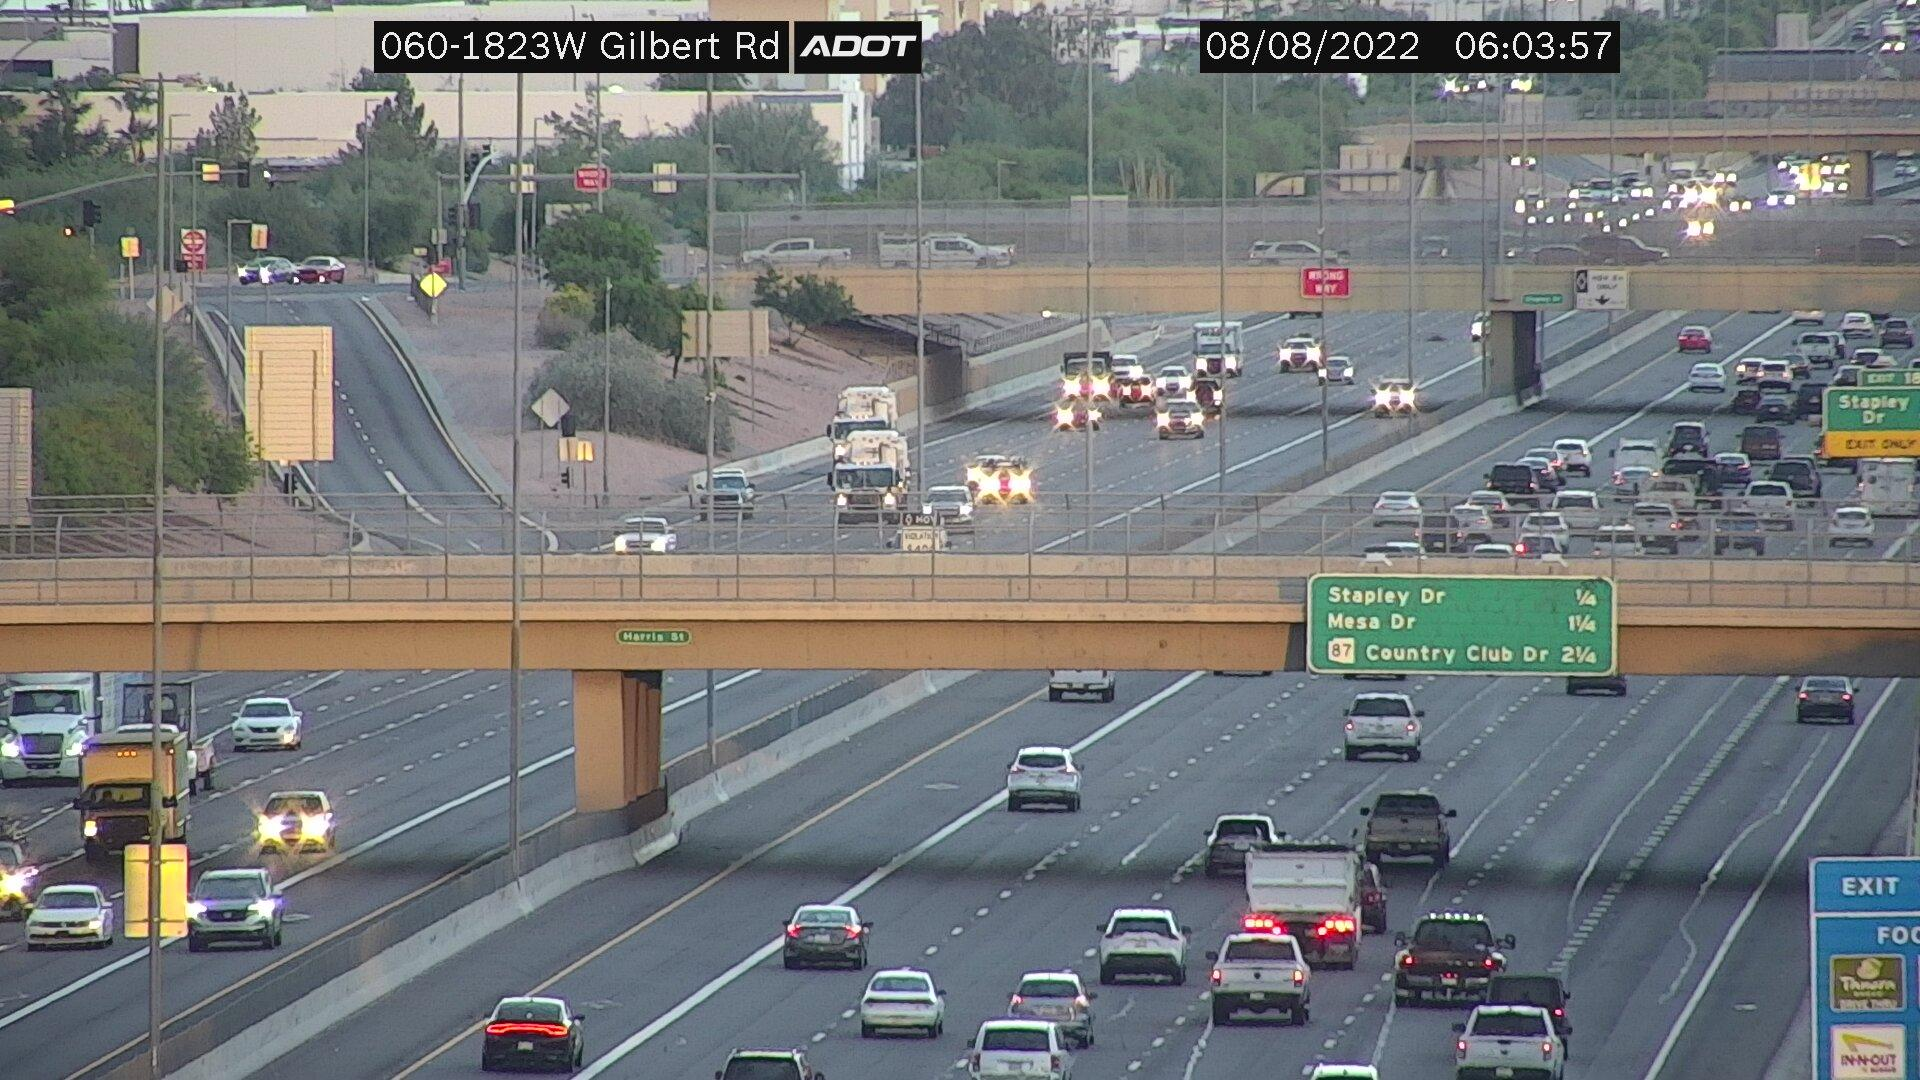 Webcam Knoell Mesa: US 60 @ Gilbert